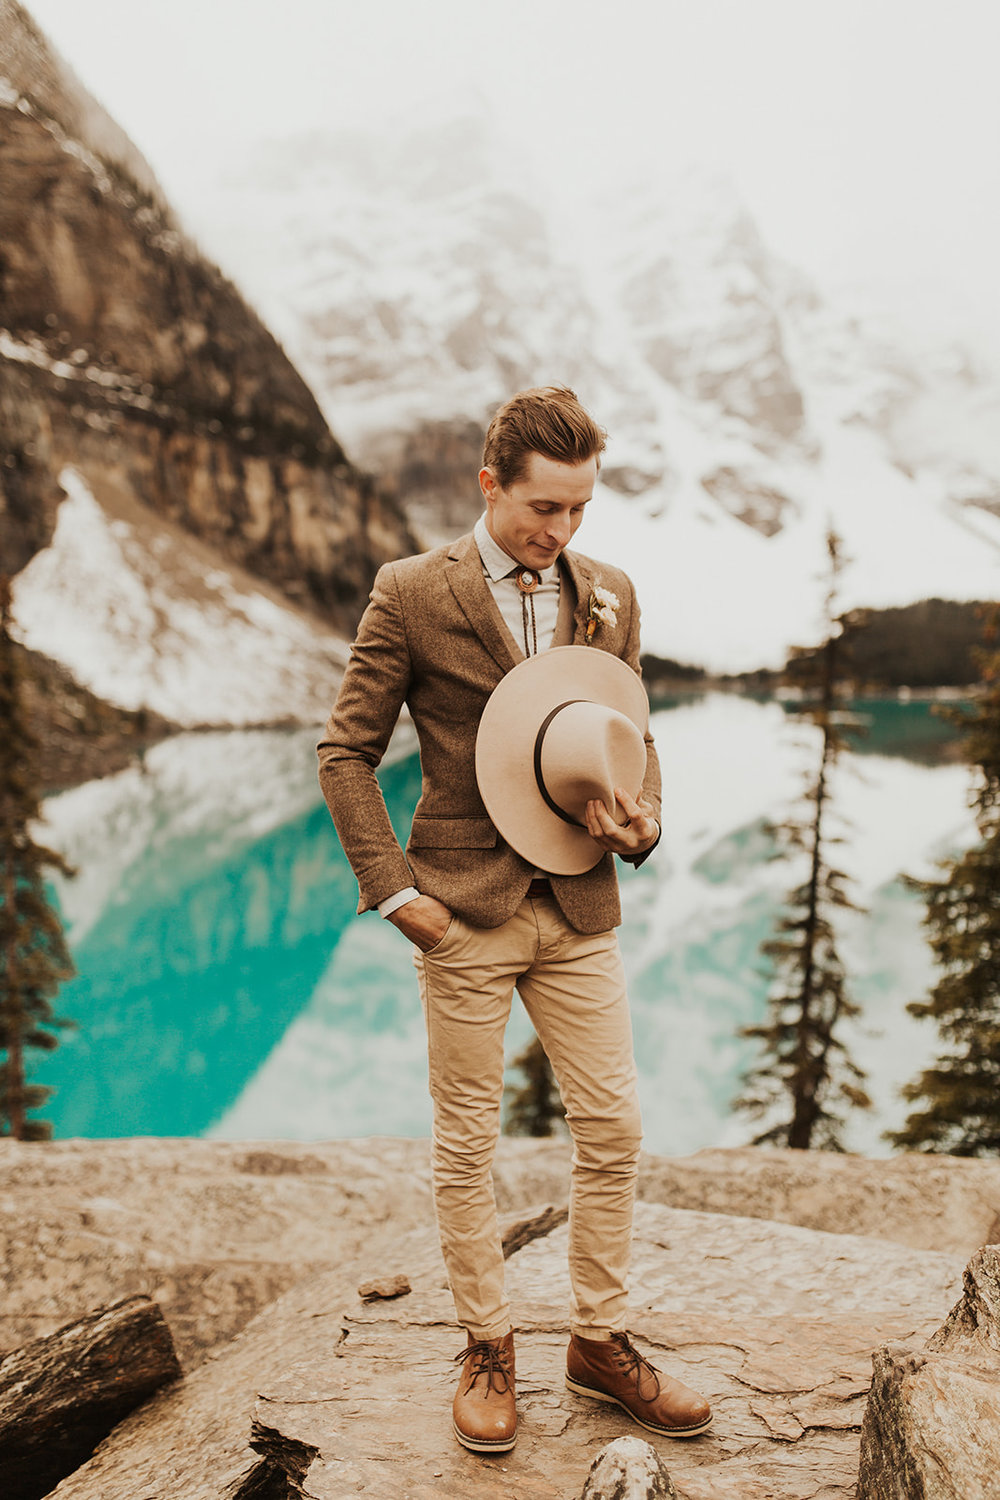 Banff Elopement l Lake Moraine Elopement l Vintage Bolo Tie l Pampas Grass Boho Boquet l Rue Design Wedding Dress l Banff Wedding Photographer l Destination Wedding Photographer l Katy Rose Photo_-9.jpg